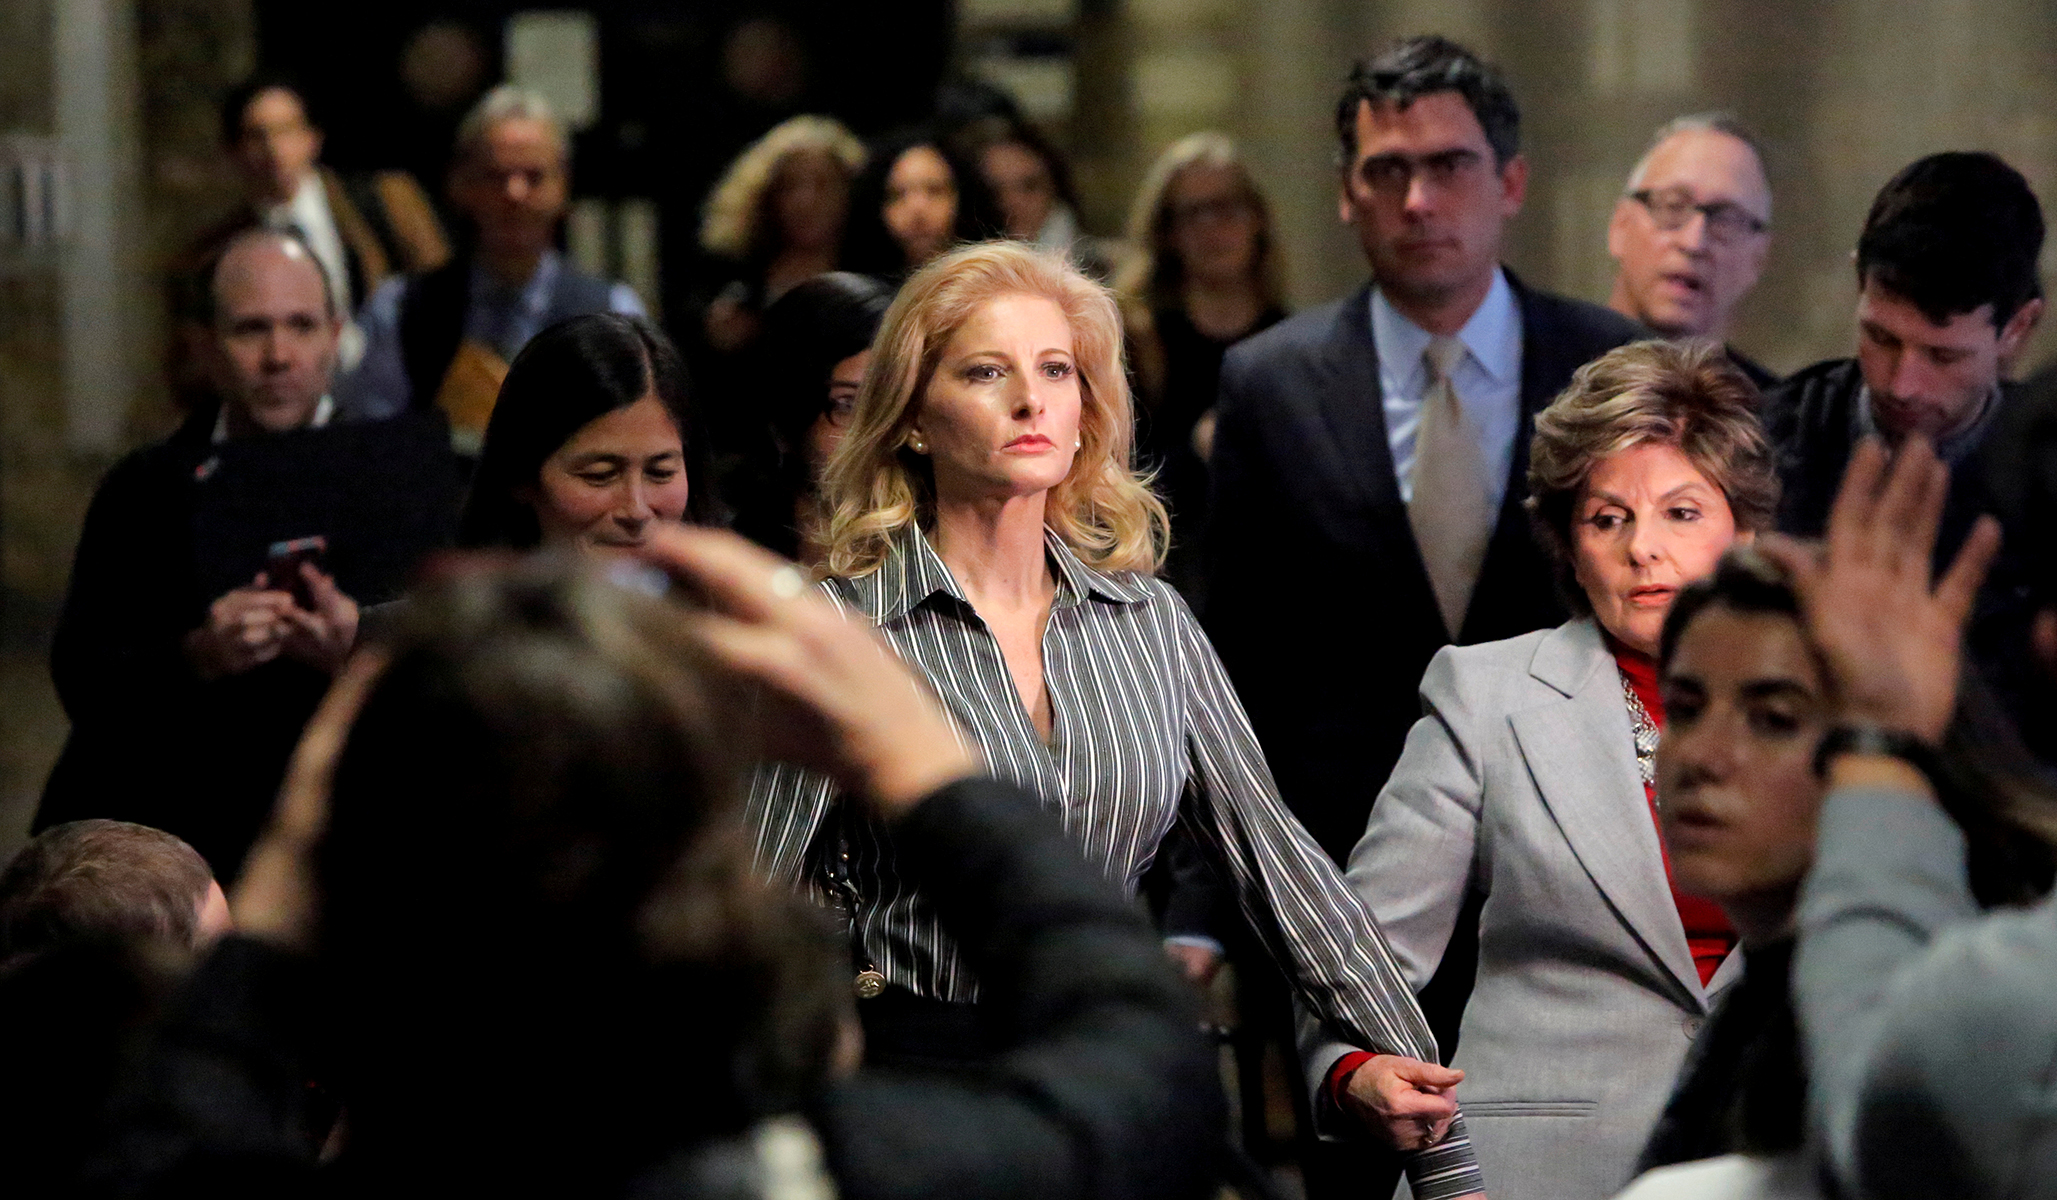 Summer Zervos -- Judge Rules Donald Trump Can Be Deposed in 'Apprentice' Contestant's Defamation Suit